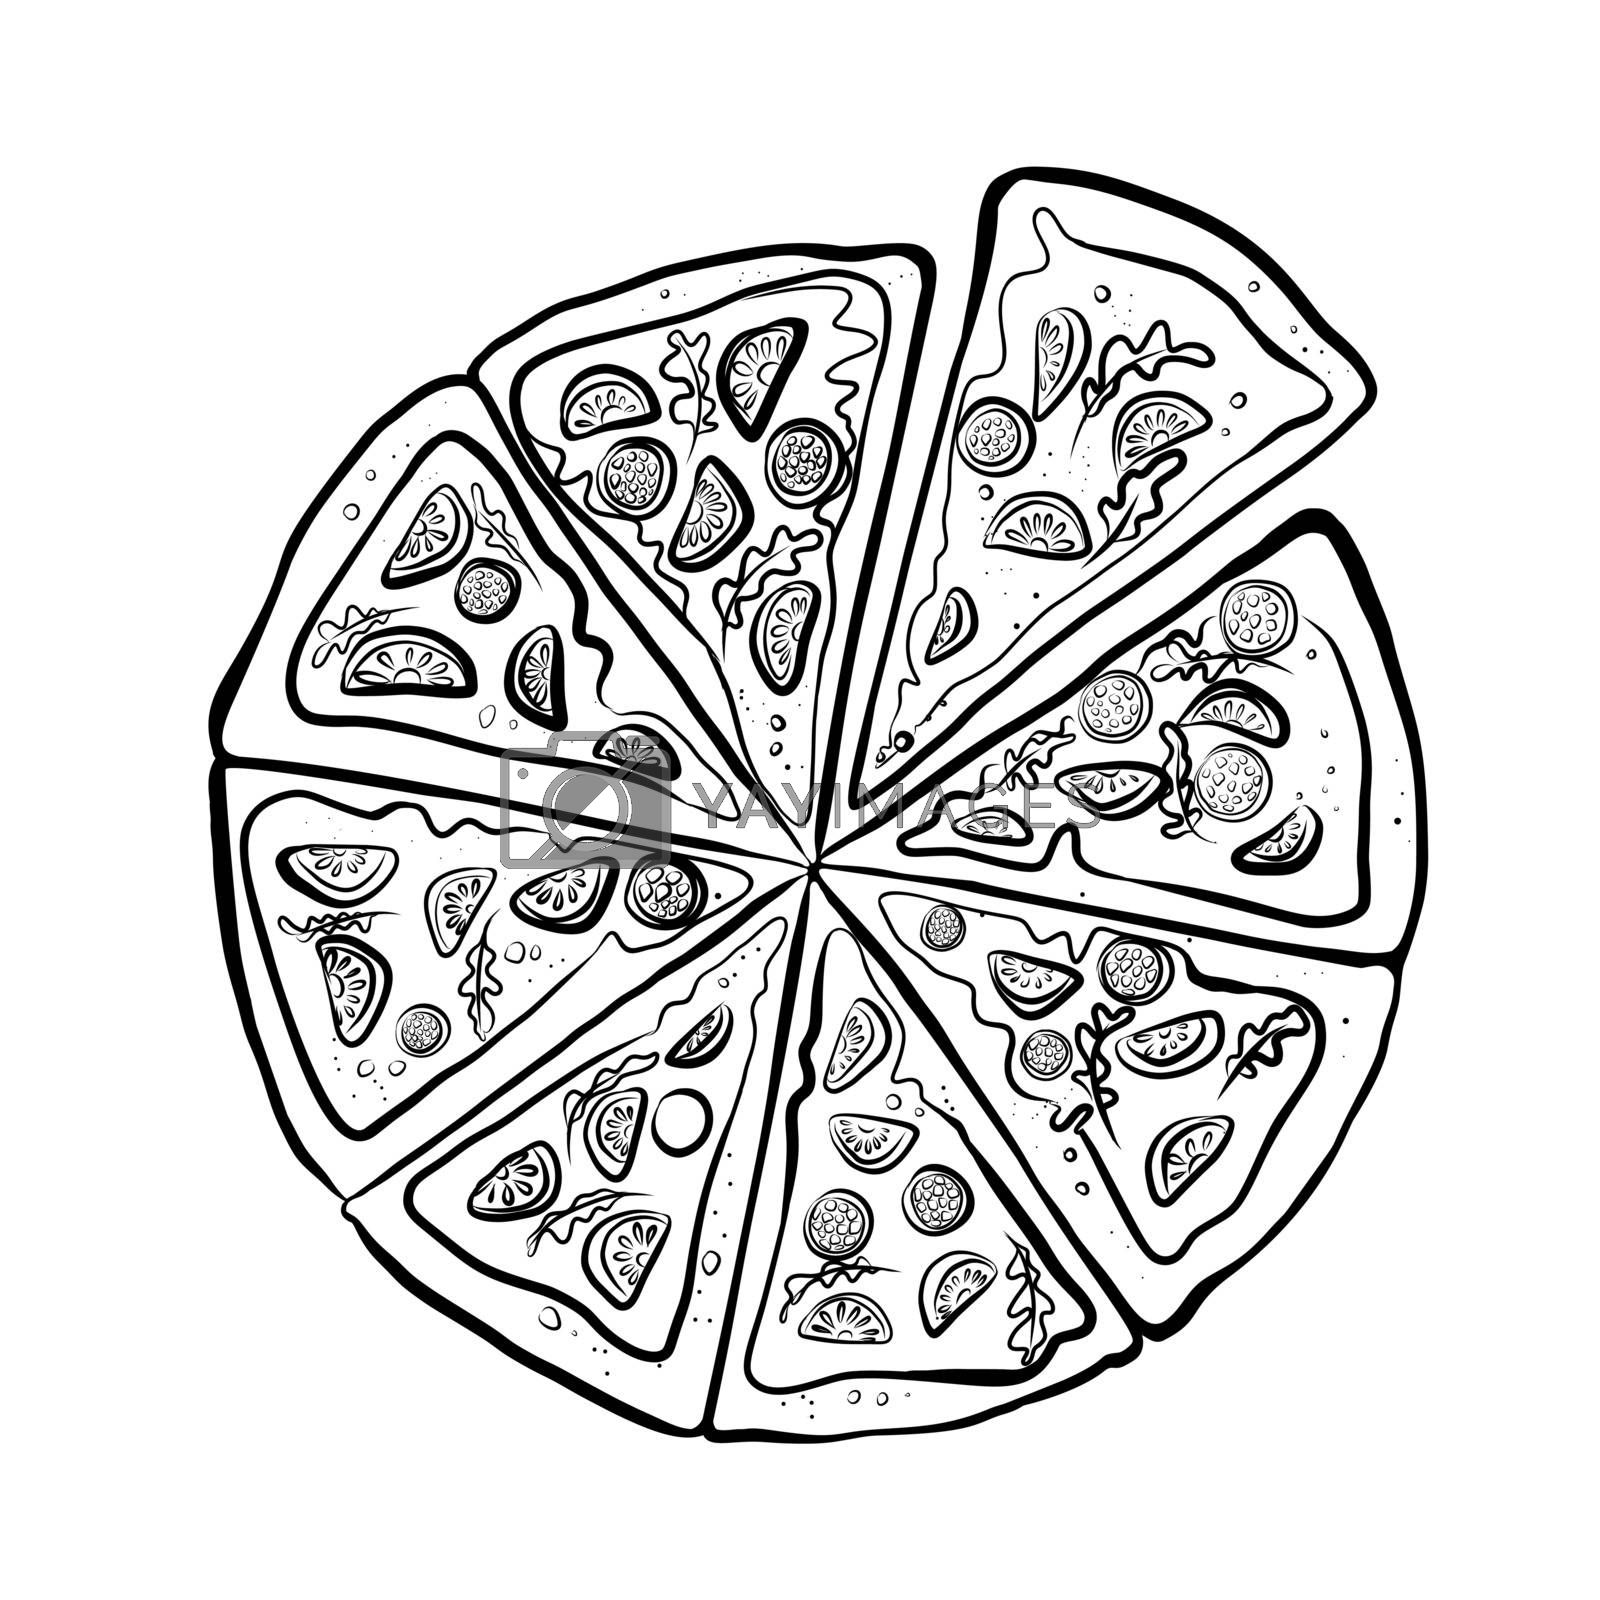 Hand Drawn Sketch of Different Pizza Slices Set. Great for Poster, Menu, Box